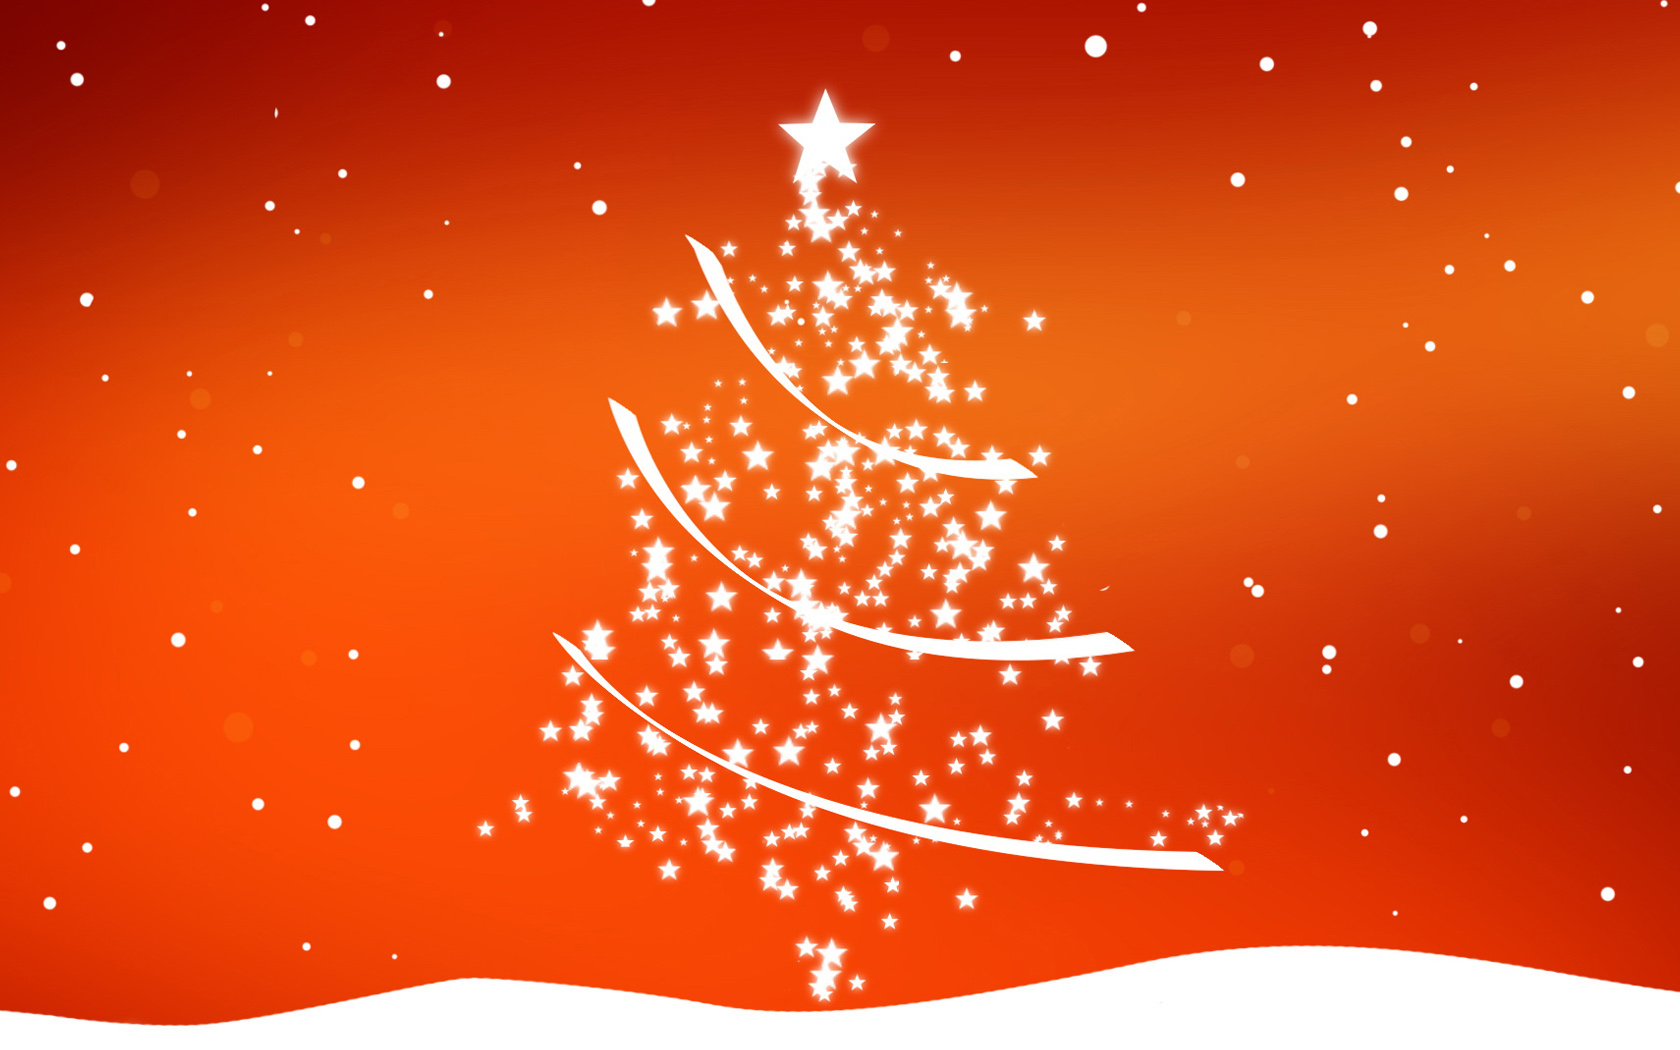 Christmas theme wallpaper download High Definition Wallpapers 1680x1050